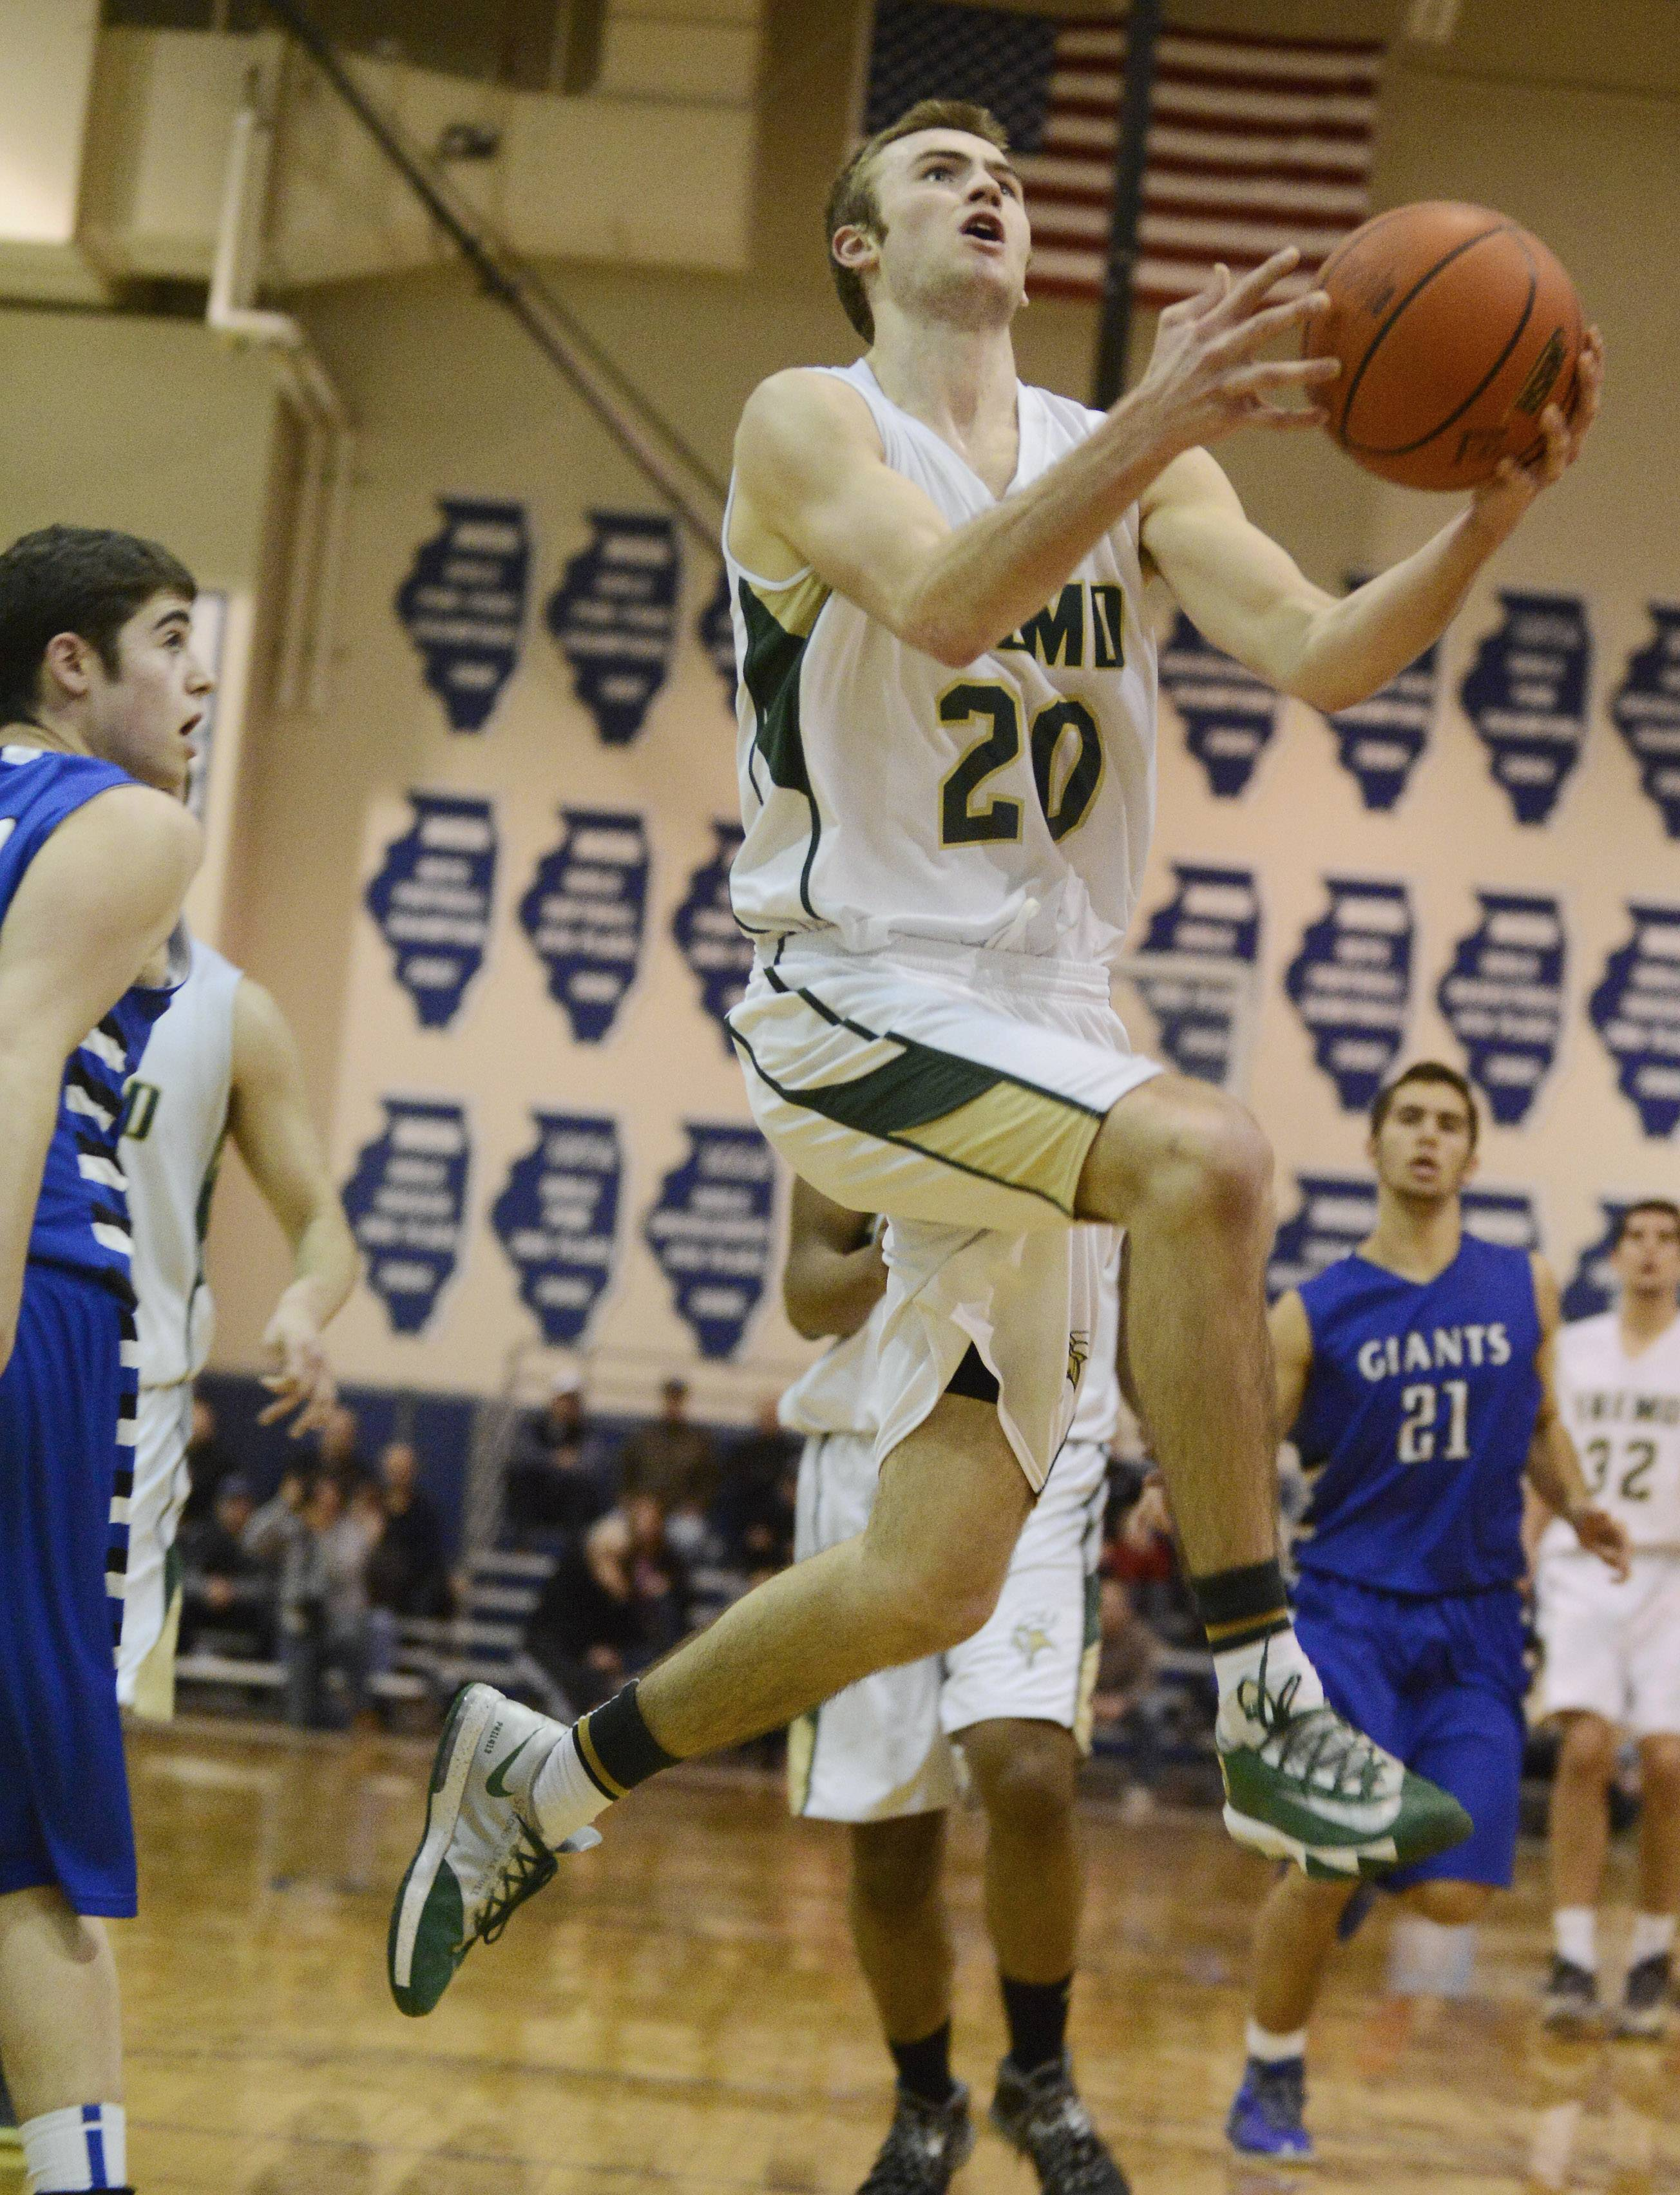 Fremd's Riley Glassmann gets to the basket during the Vikings' victory over Highland Park in Wednesday's Class 4A sectional semifinal at Lake Zurich.